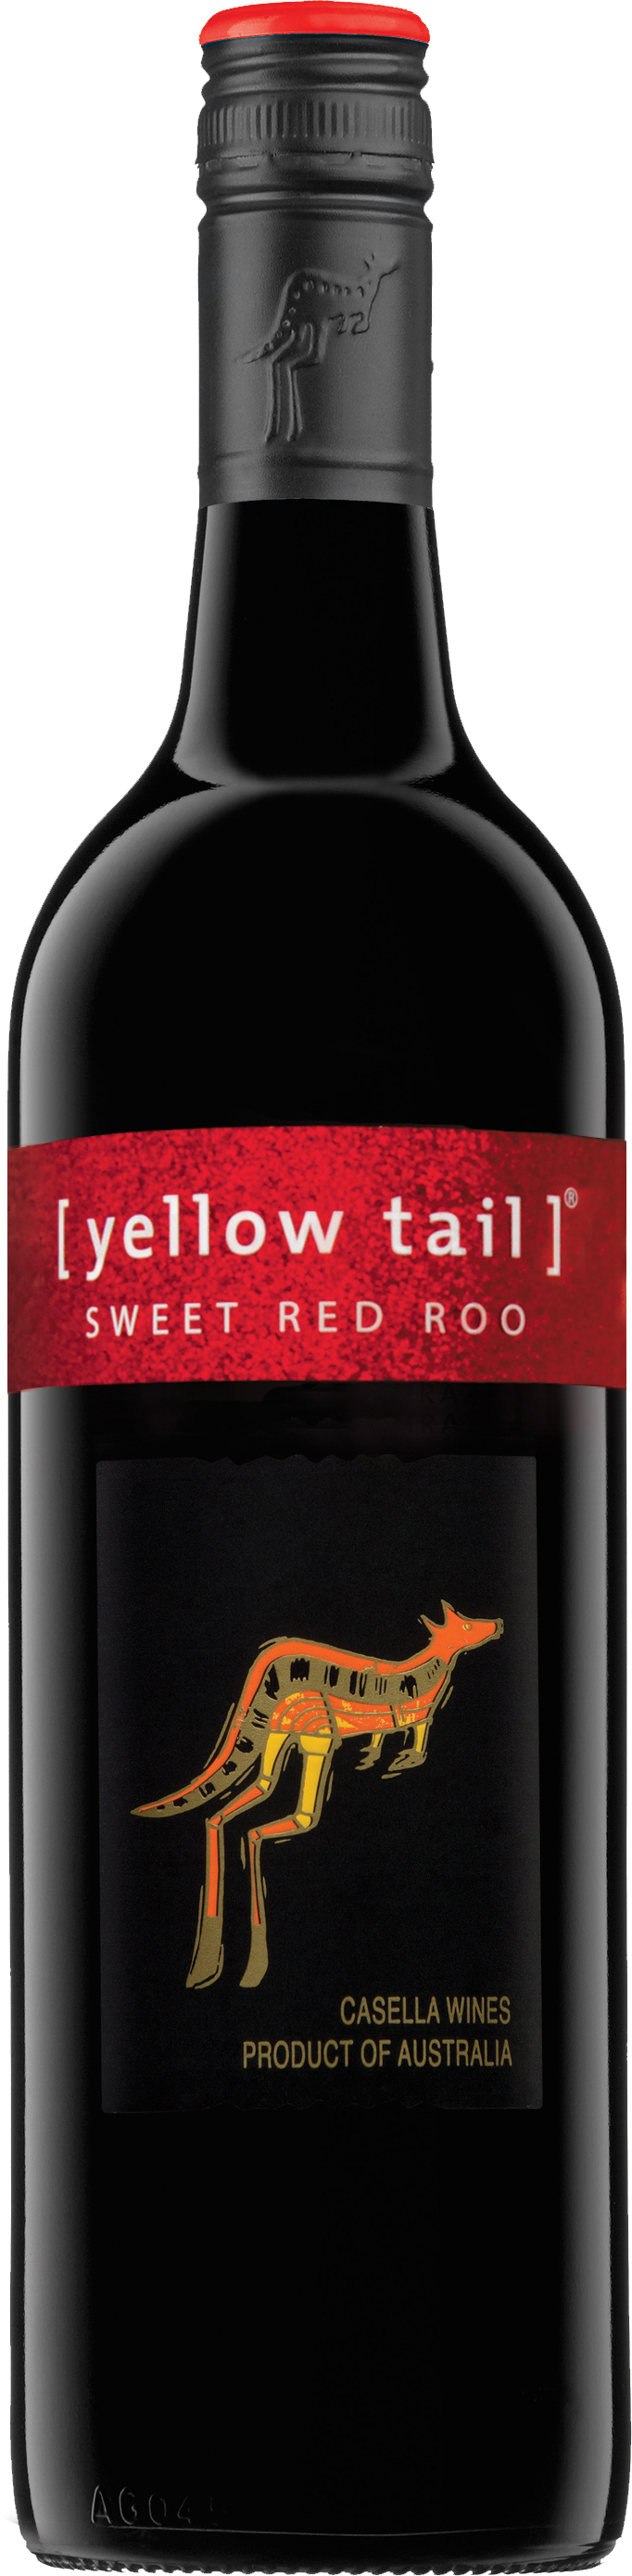 Relaxing With Some Sweet Smooth Fruity And Soothing Red Roo Wine From Yellow Tail While Chilling To Some Soulful Funkie Sweet Red Wines Sweet Wine Red Wine